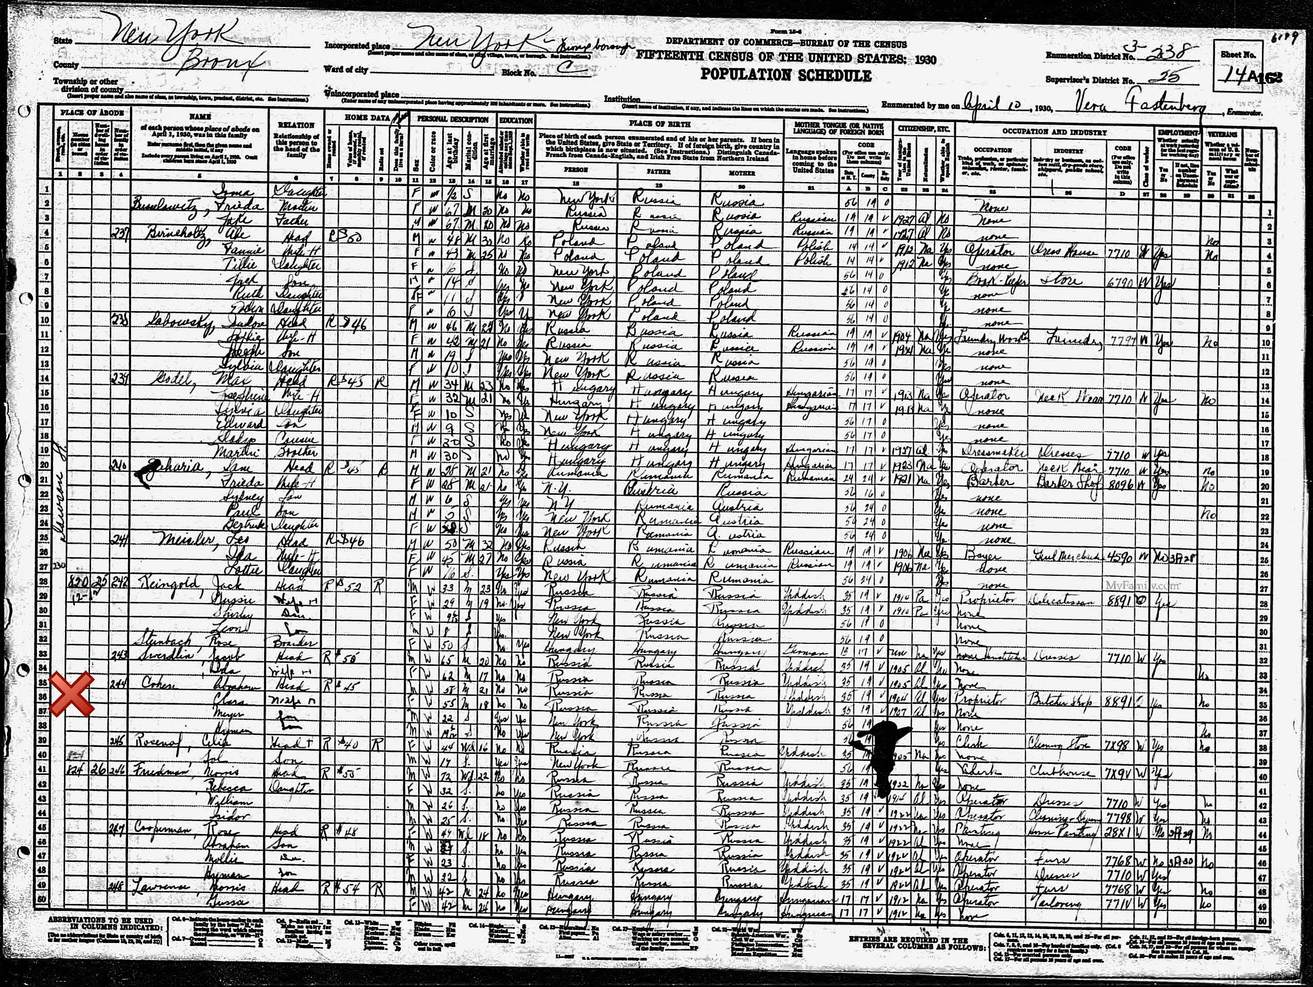 1930 United States Federal Census of Abraham Cohen Family